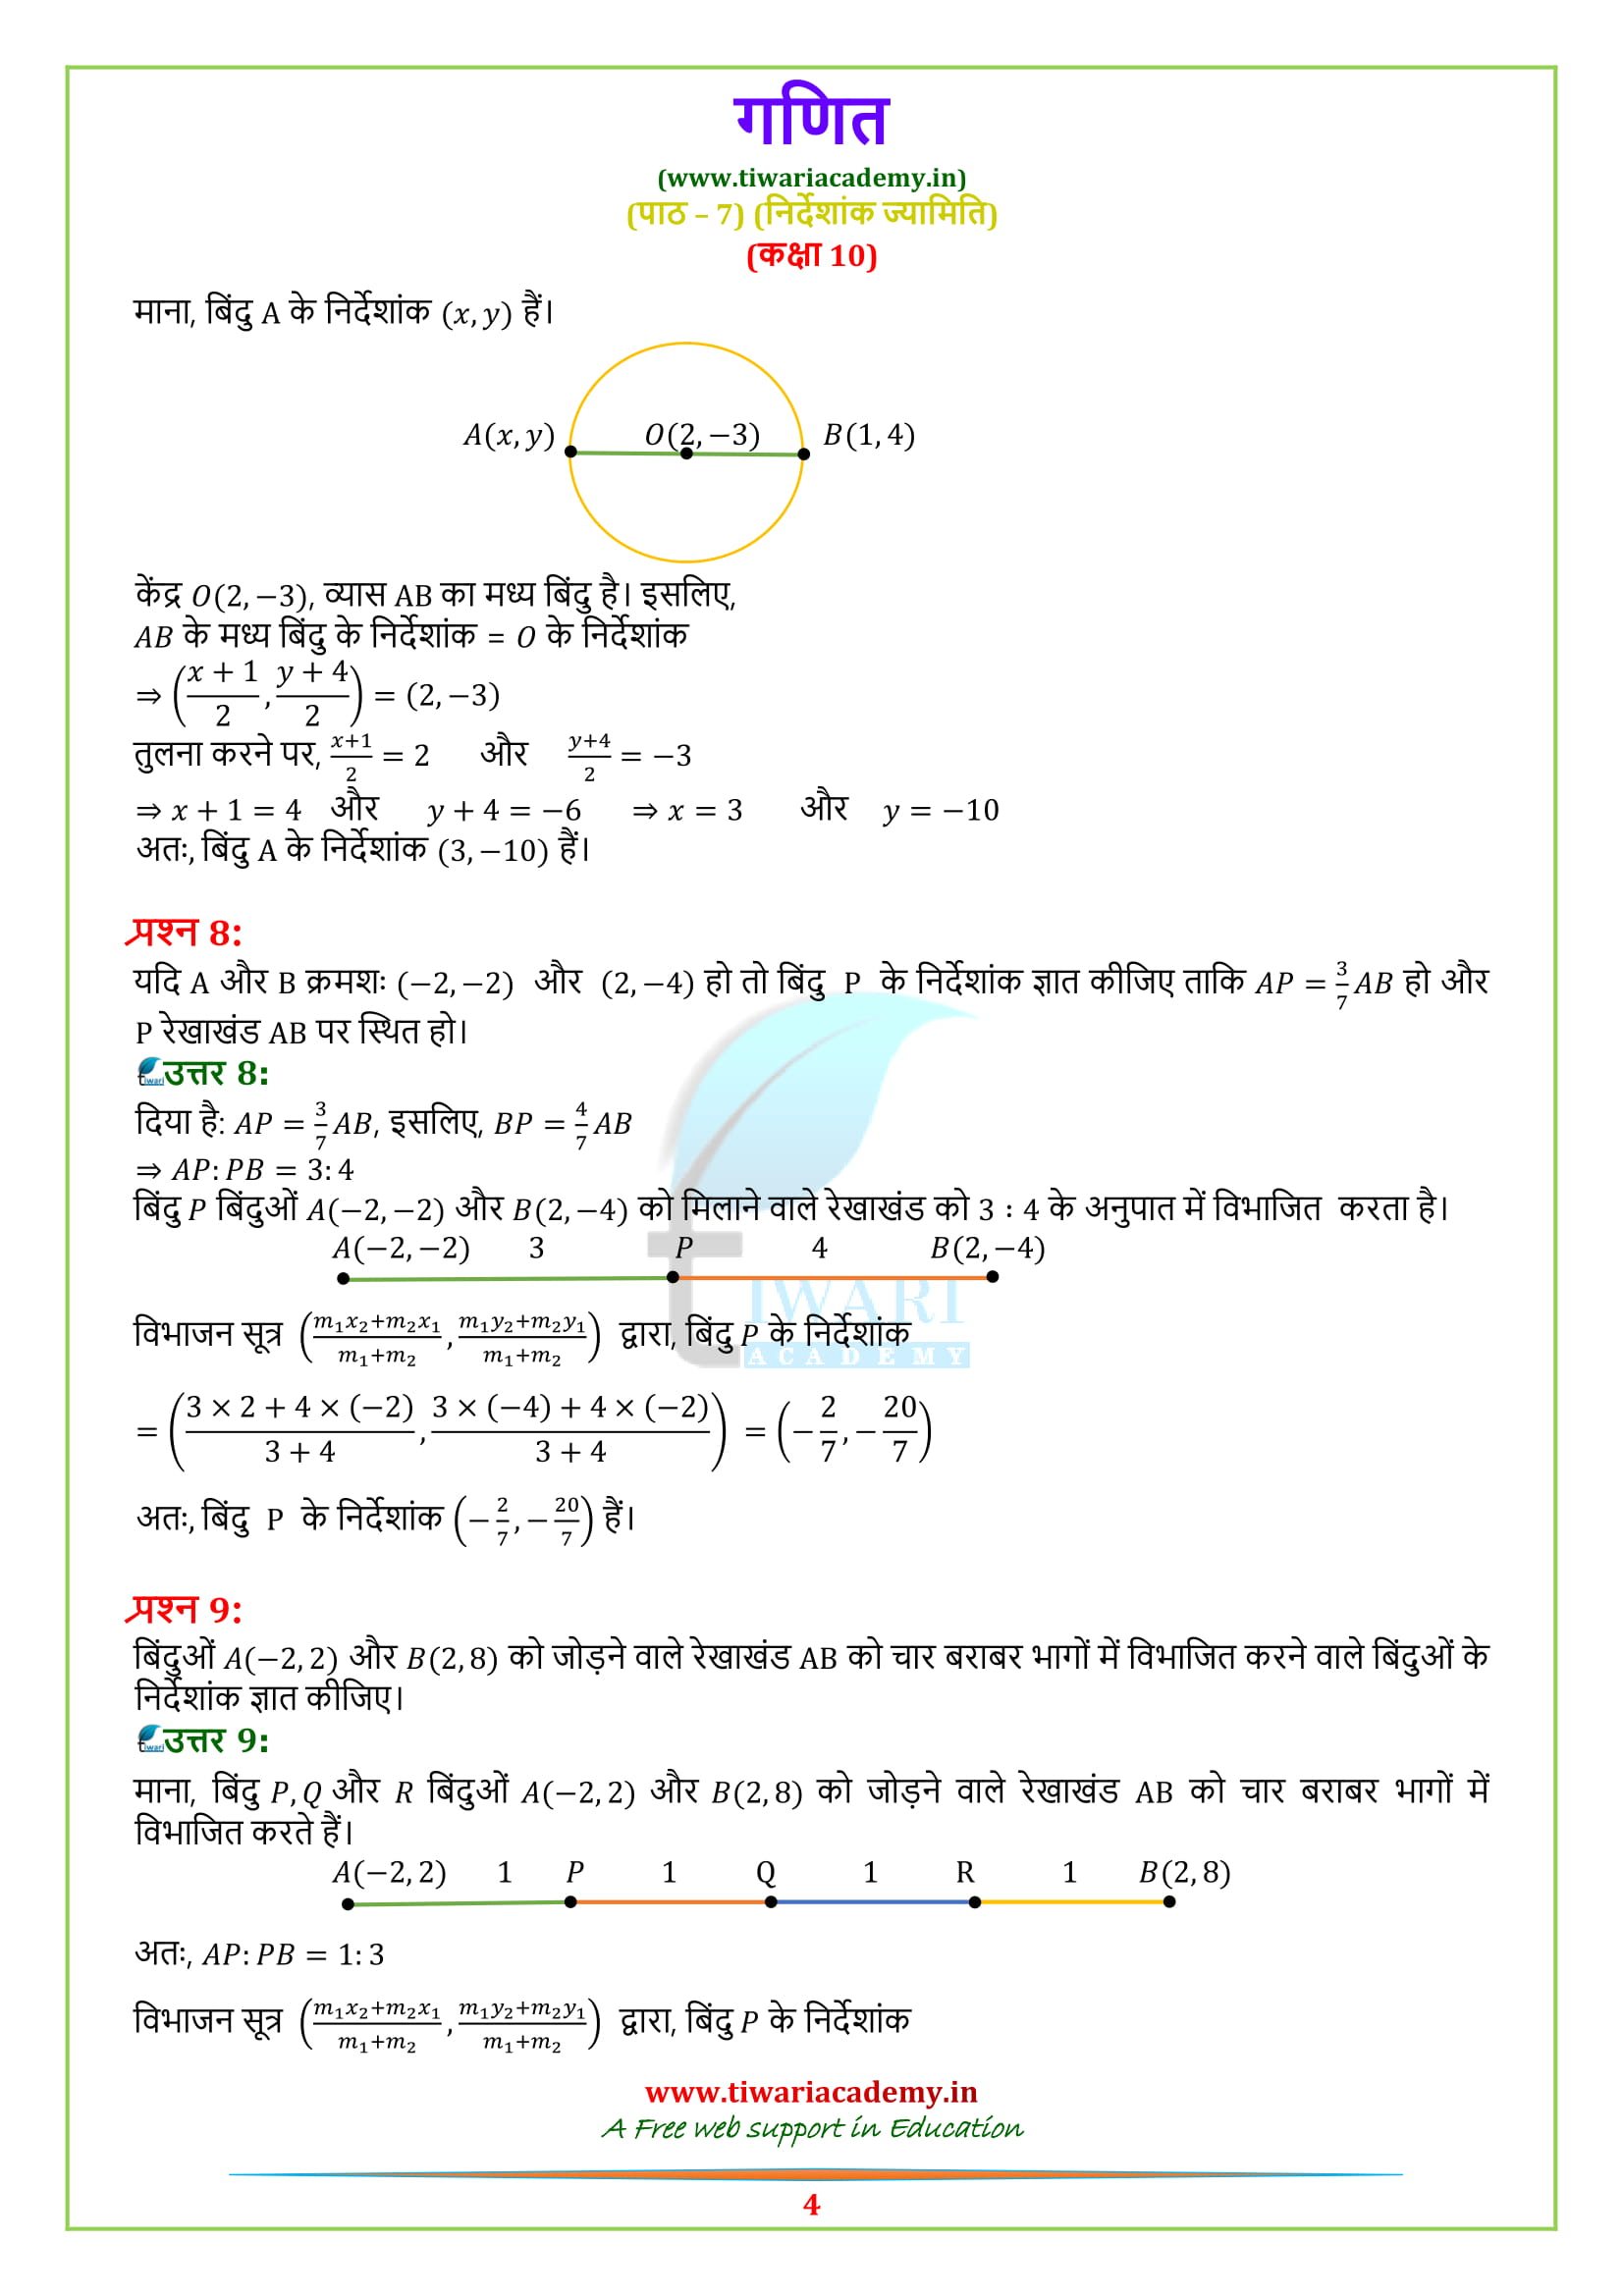 Class 10 Maths Exercise 7.2 Soluitons in pdf